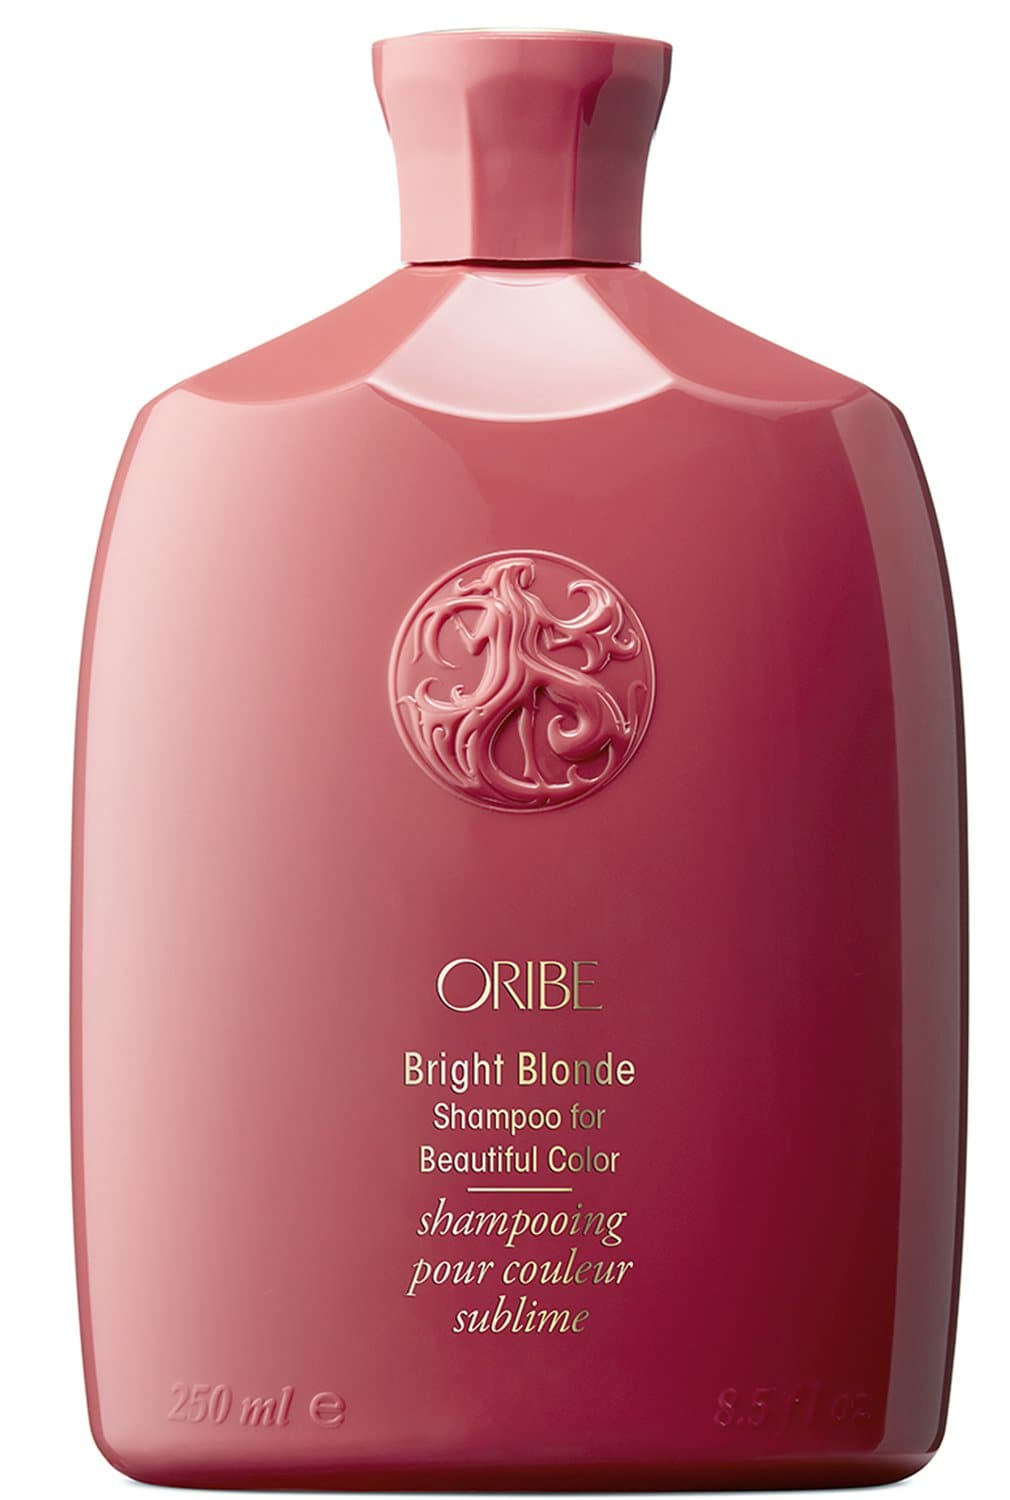 Bright Blonde Shampoo 250ml | Oribe